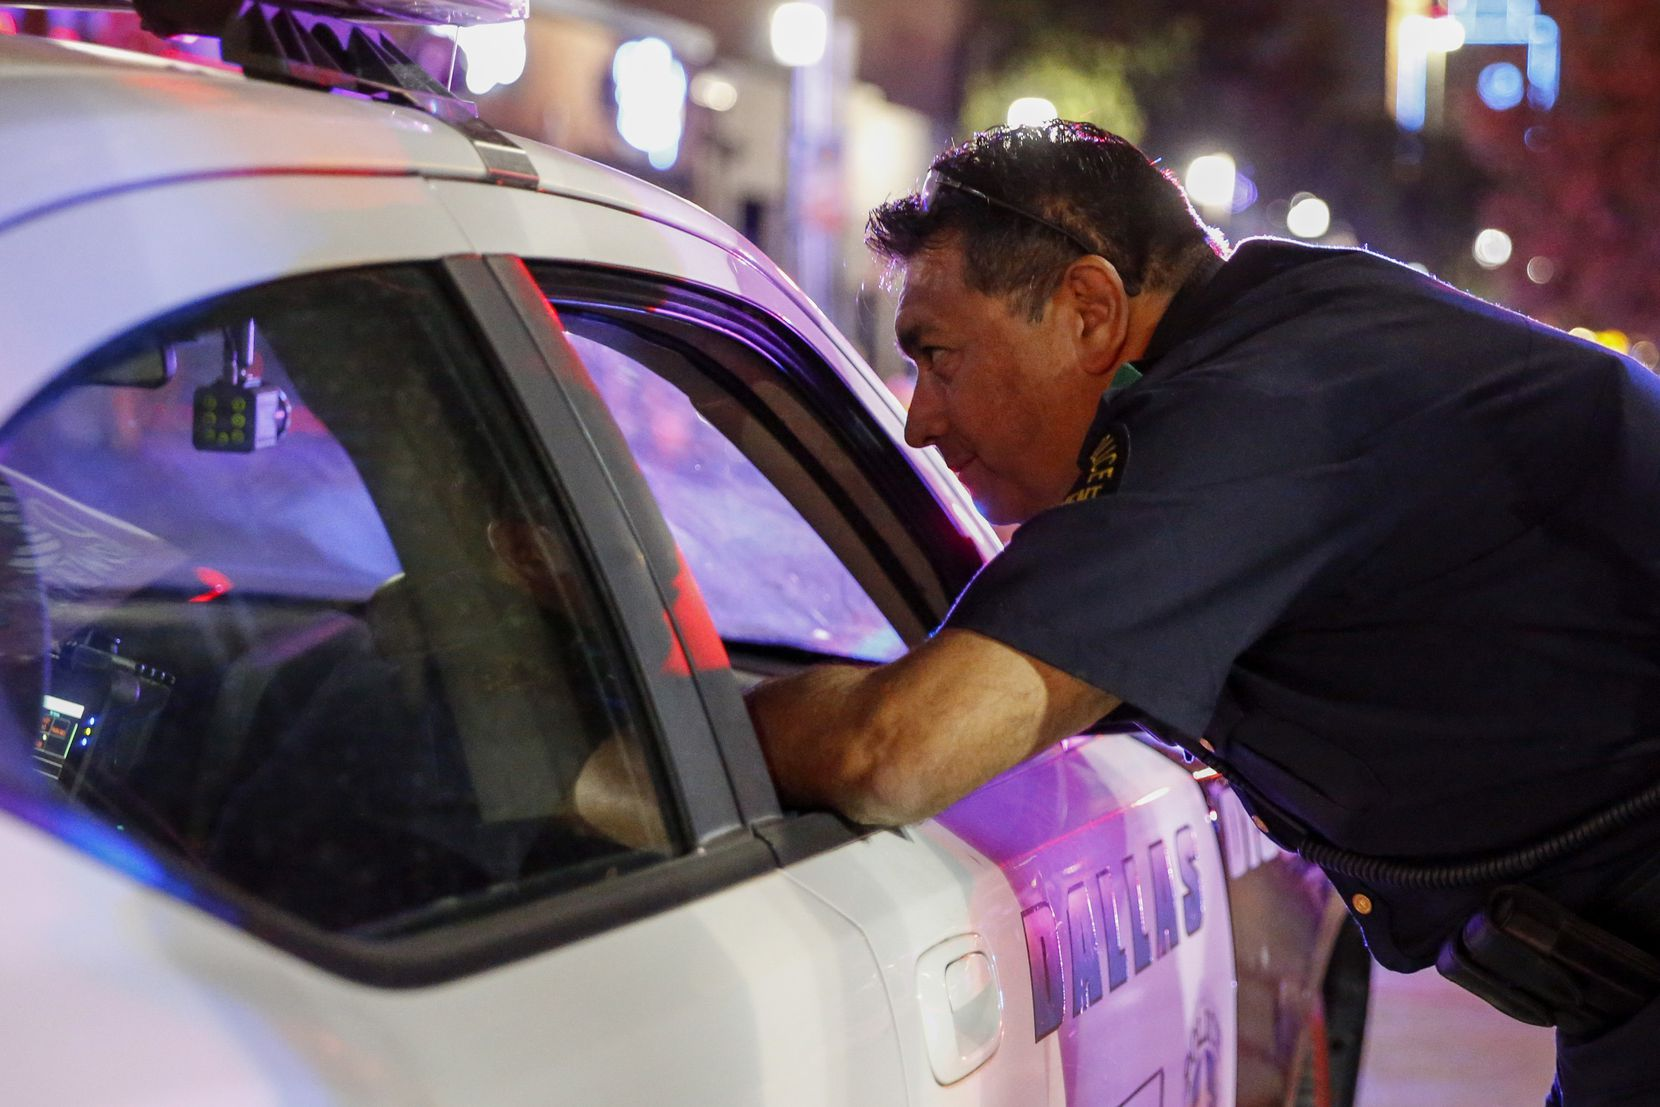 Herrera visits with another officer while on patrol in Dallas' Deep Ellum entertainment district, just east of downtown.